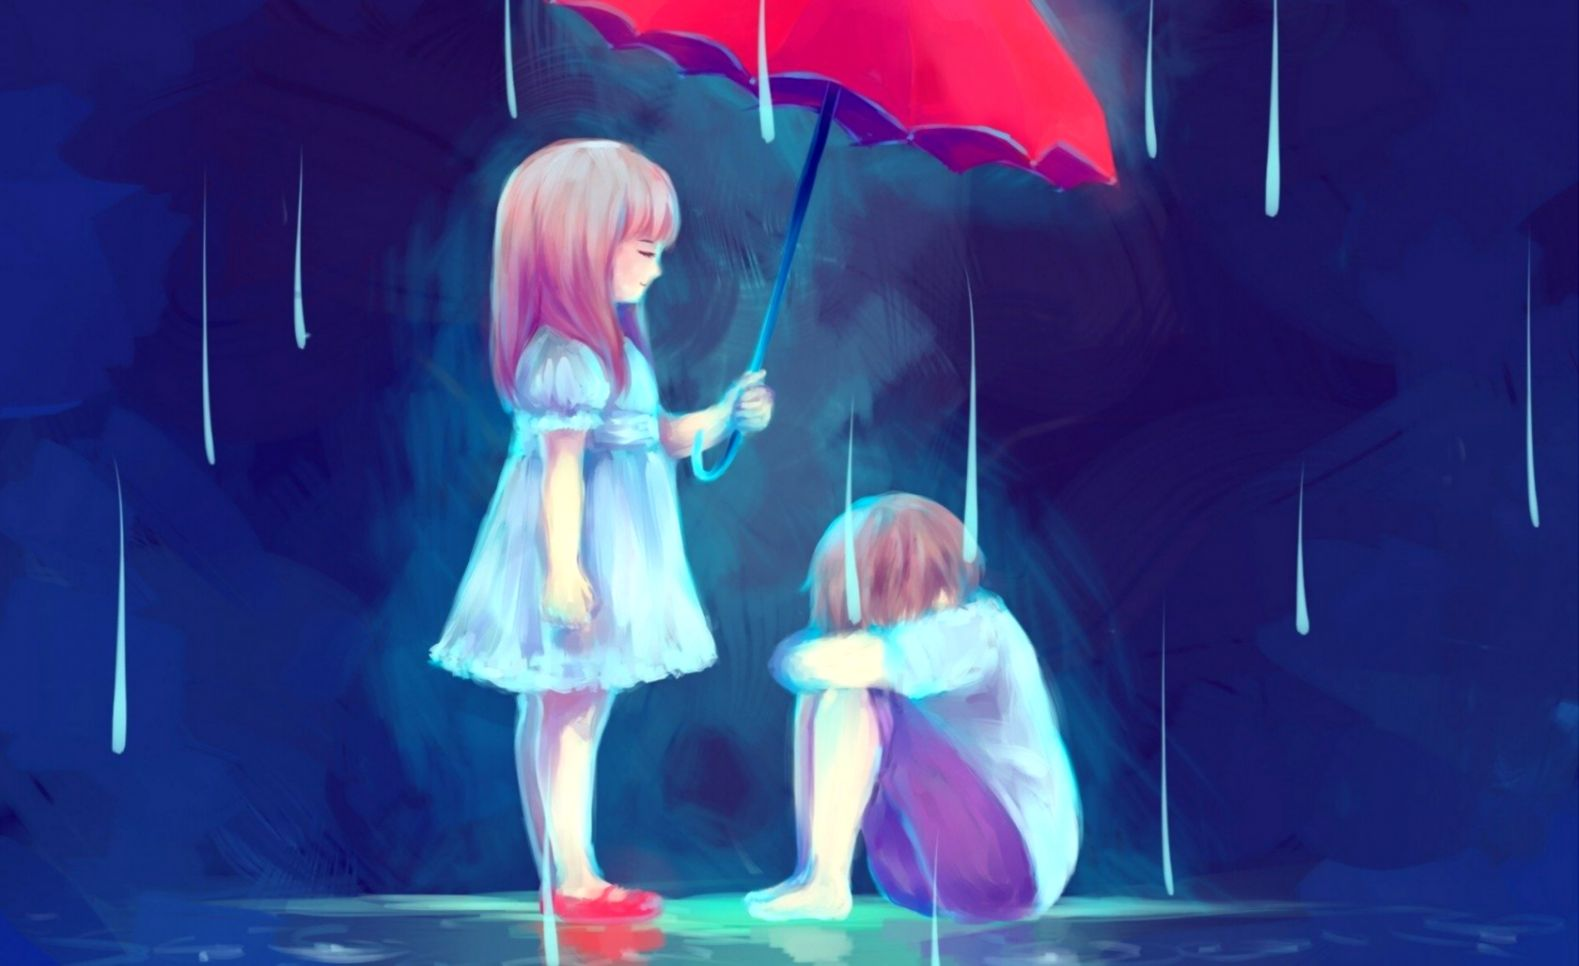 Sad Love Anime Wallpapers This Wallpapers